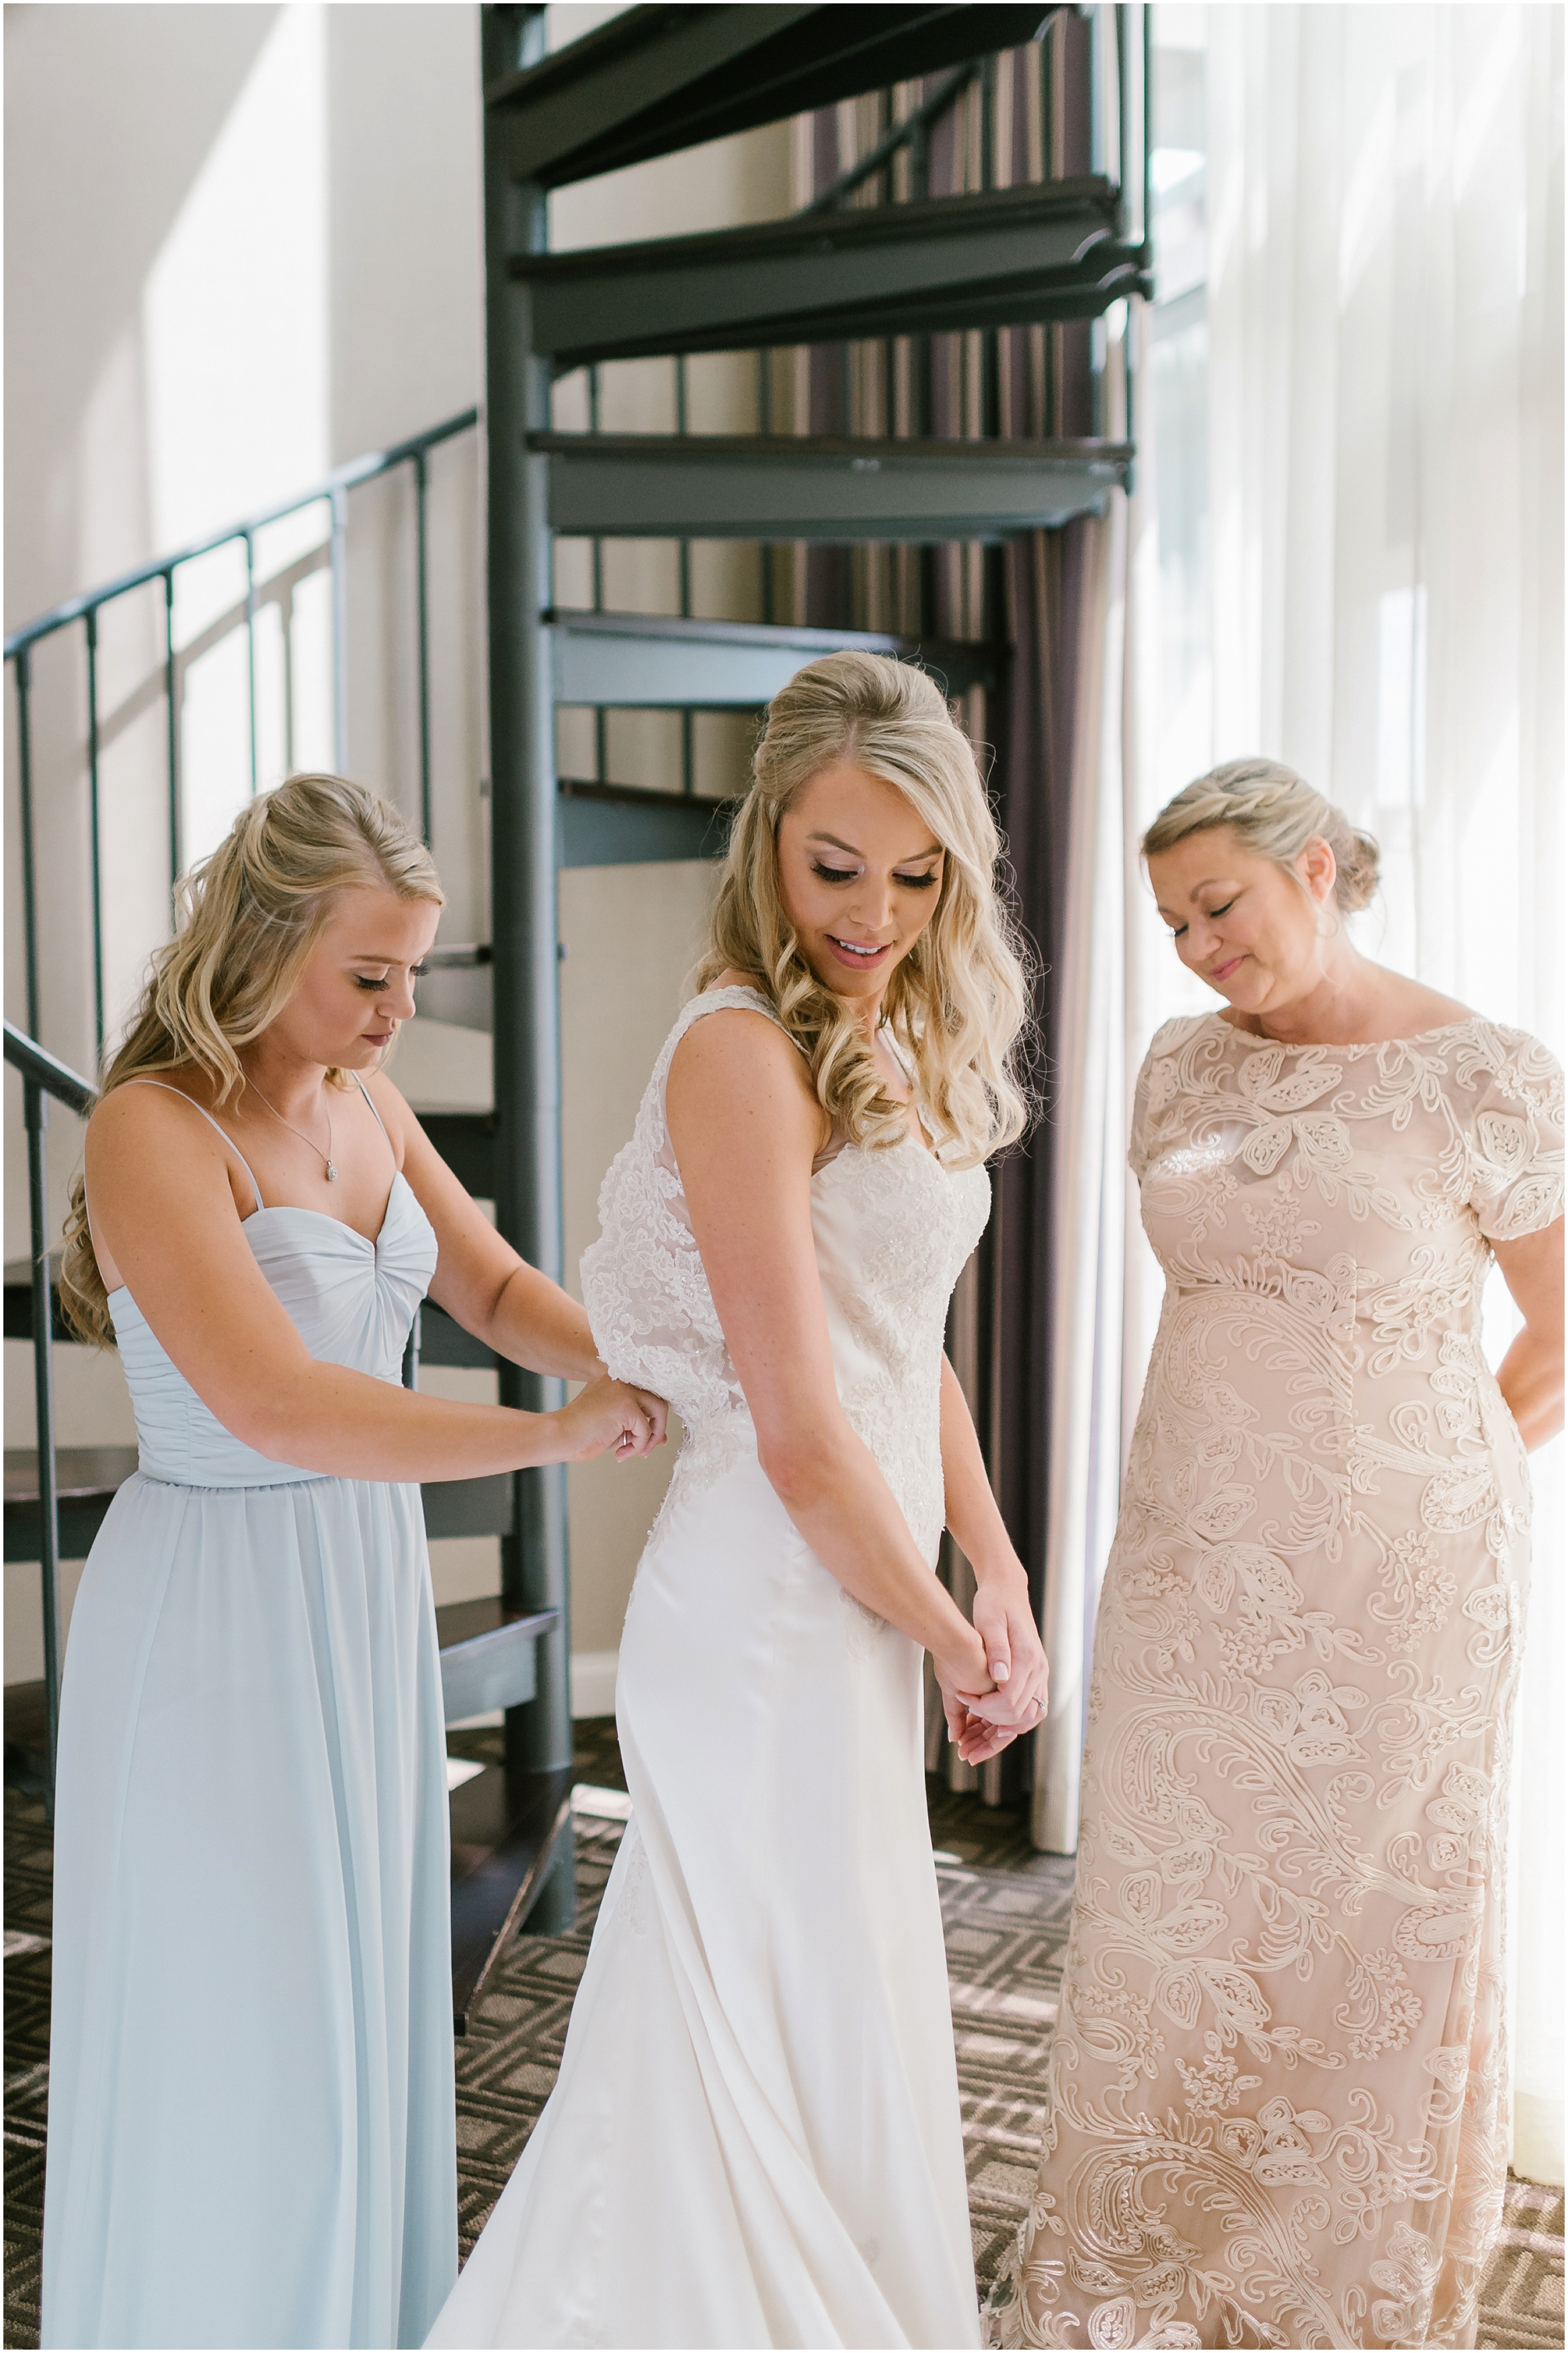 Rebecca_Shehorn_Photography_Indianapolis_Wedding_Photographer_8923.jpg